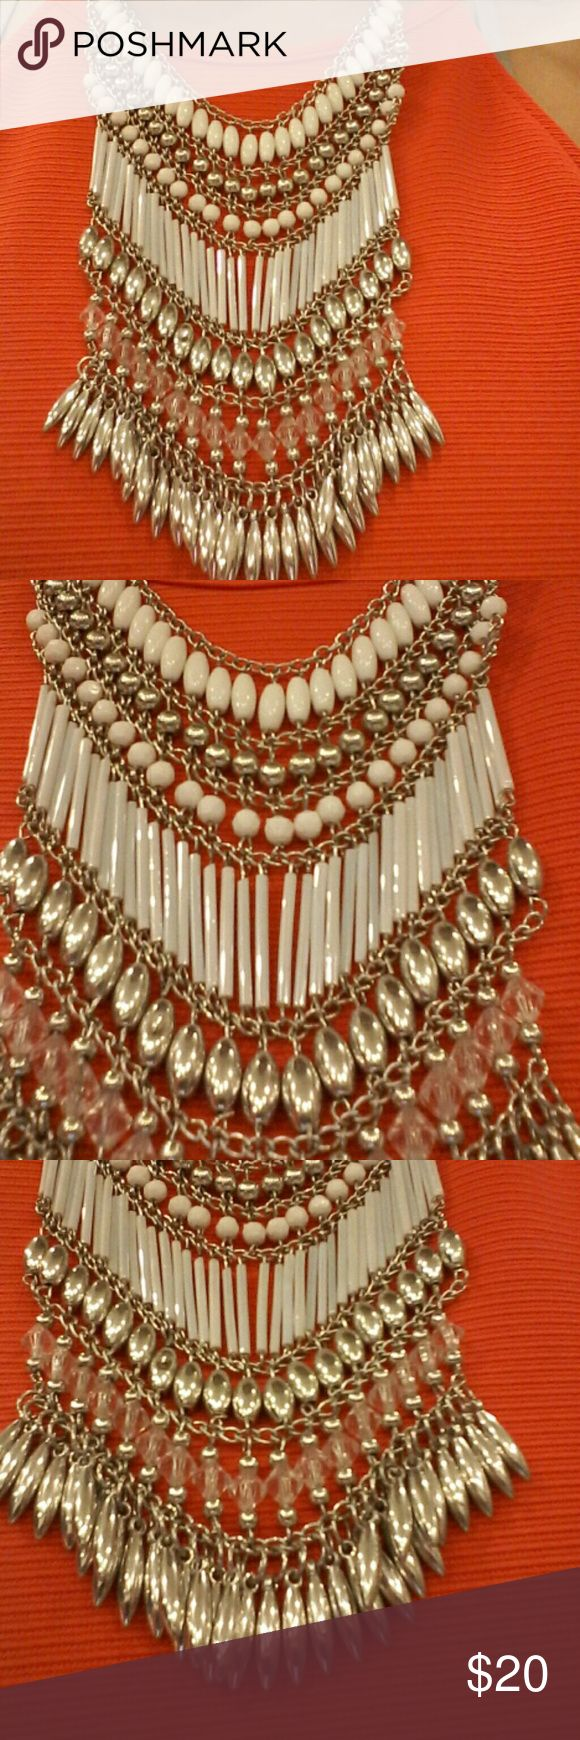 Statement necklace NWOT. never worn except for photo.  Tag: Boho statement choker necklace. Follow game party game. J. Crew free people loft Kate spade Michael kors guess forever21 Charlotte russe silver crystals stones cubic zirconia diamonds Jewelry Necklaces